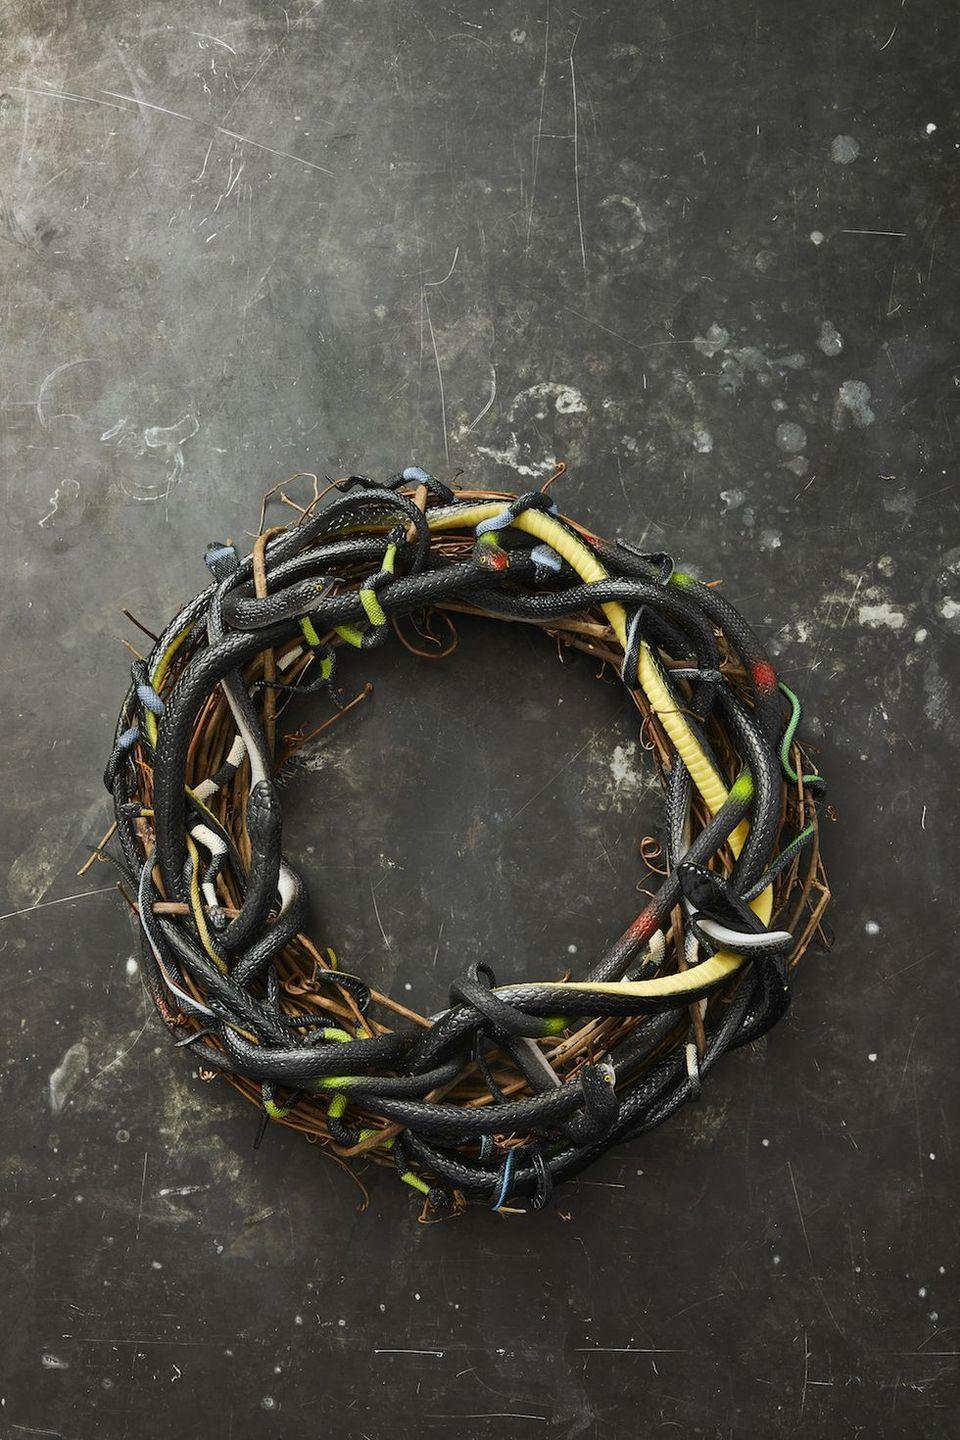 """<p>Your neighbors will certainly freak out over this twig wreath that's decked out in plastic snakes. </p><p><a class=""""link rapid-noclick-resp"""" href=""""https://go.redirectingat.com?id=74968X1596630&url=https%3A%2F%2Fwww.michaels.com%2Fgrapevine-wreath12-inch%2FD059535S.html&sref=https%3A%2F%2Fwww.goodhousekeeping.com%2Fholidays%2Fhalloween-ideas%2Fg33437890%2Fhalloween-table-decorations-centerpieces%2F"""" rel=""""nofollow noopener"""" target=""""_blank"""" data-ylk=""""slk:SHOP GRAPEVINE WREATH"""">SHOP GRAPEVINE WREATH</a></p>"""